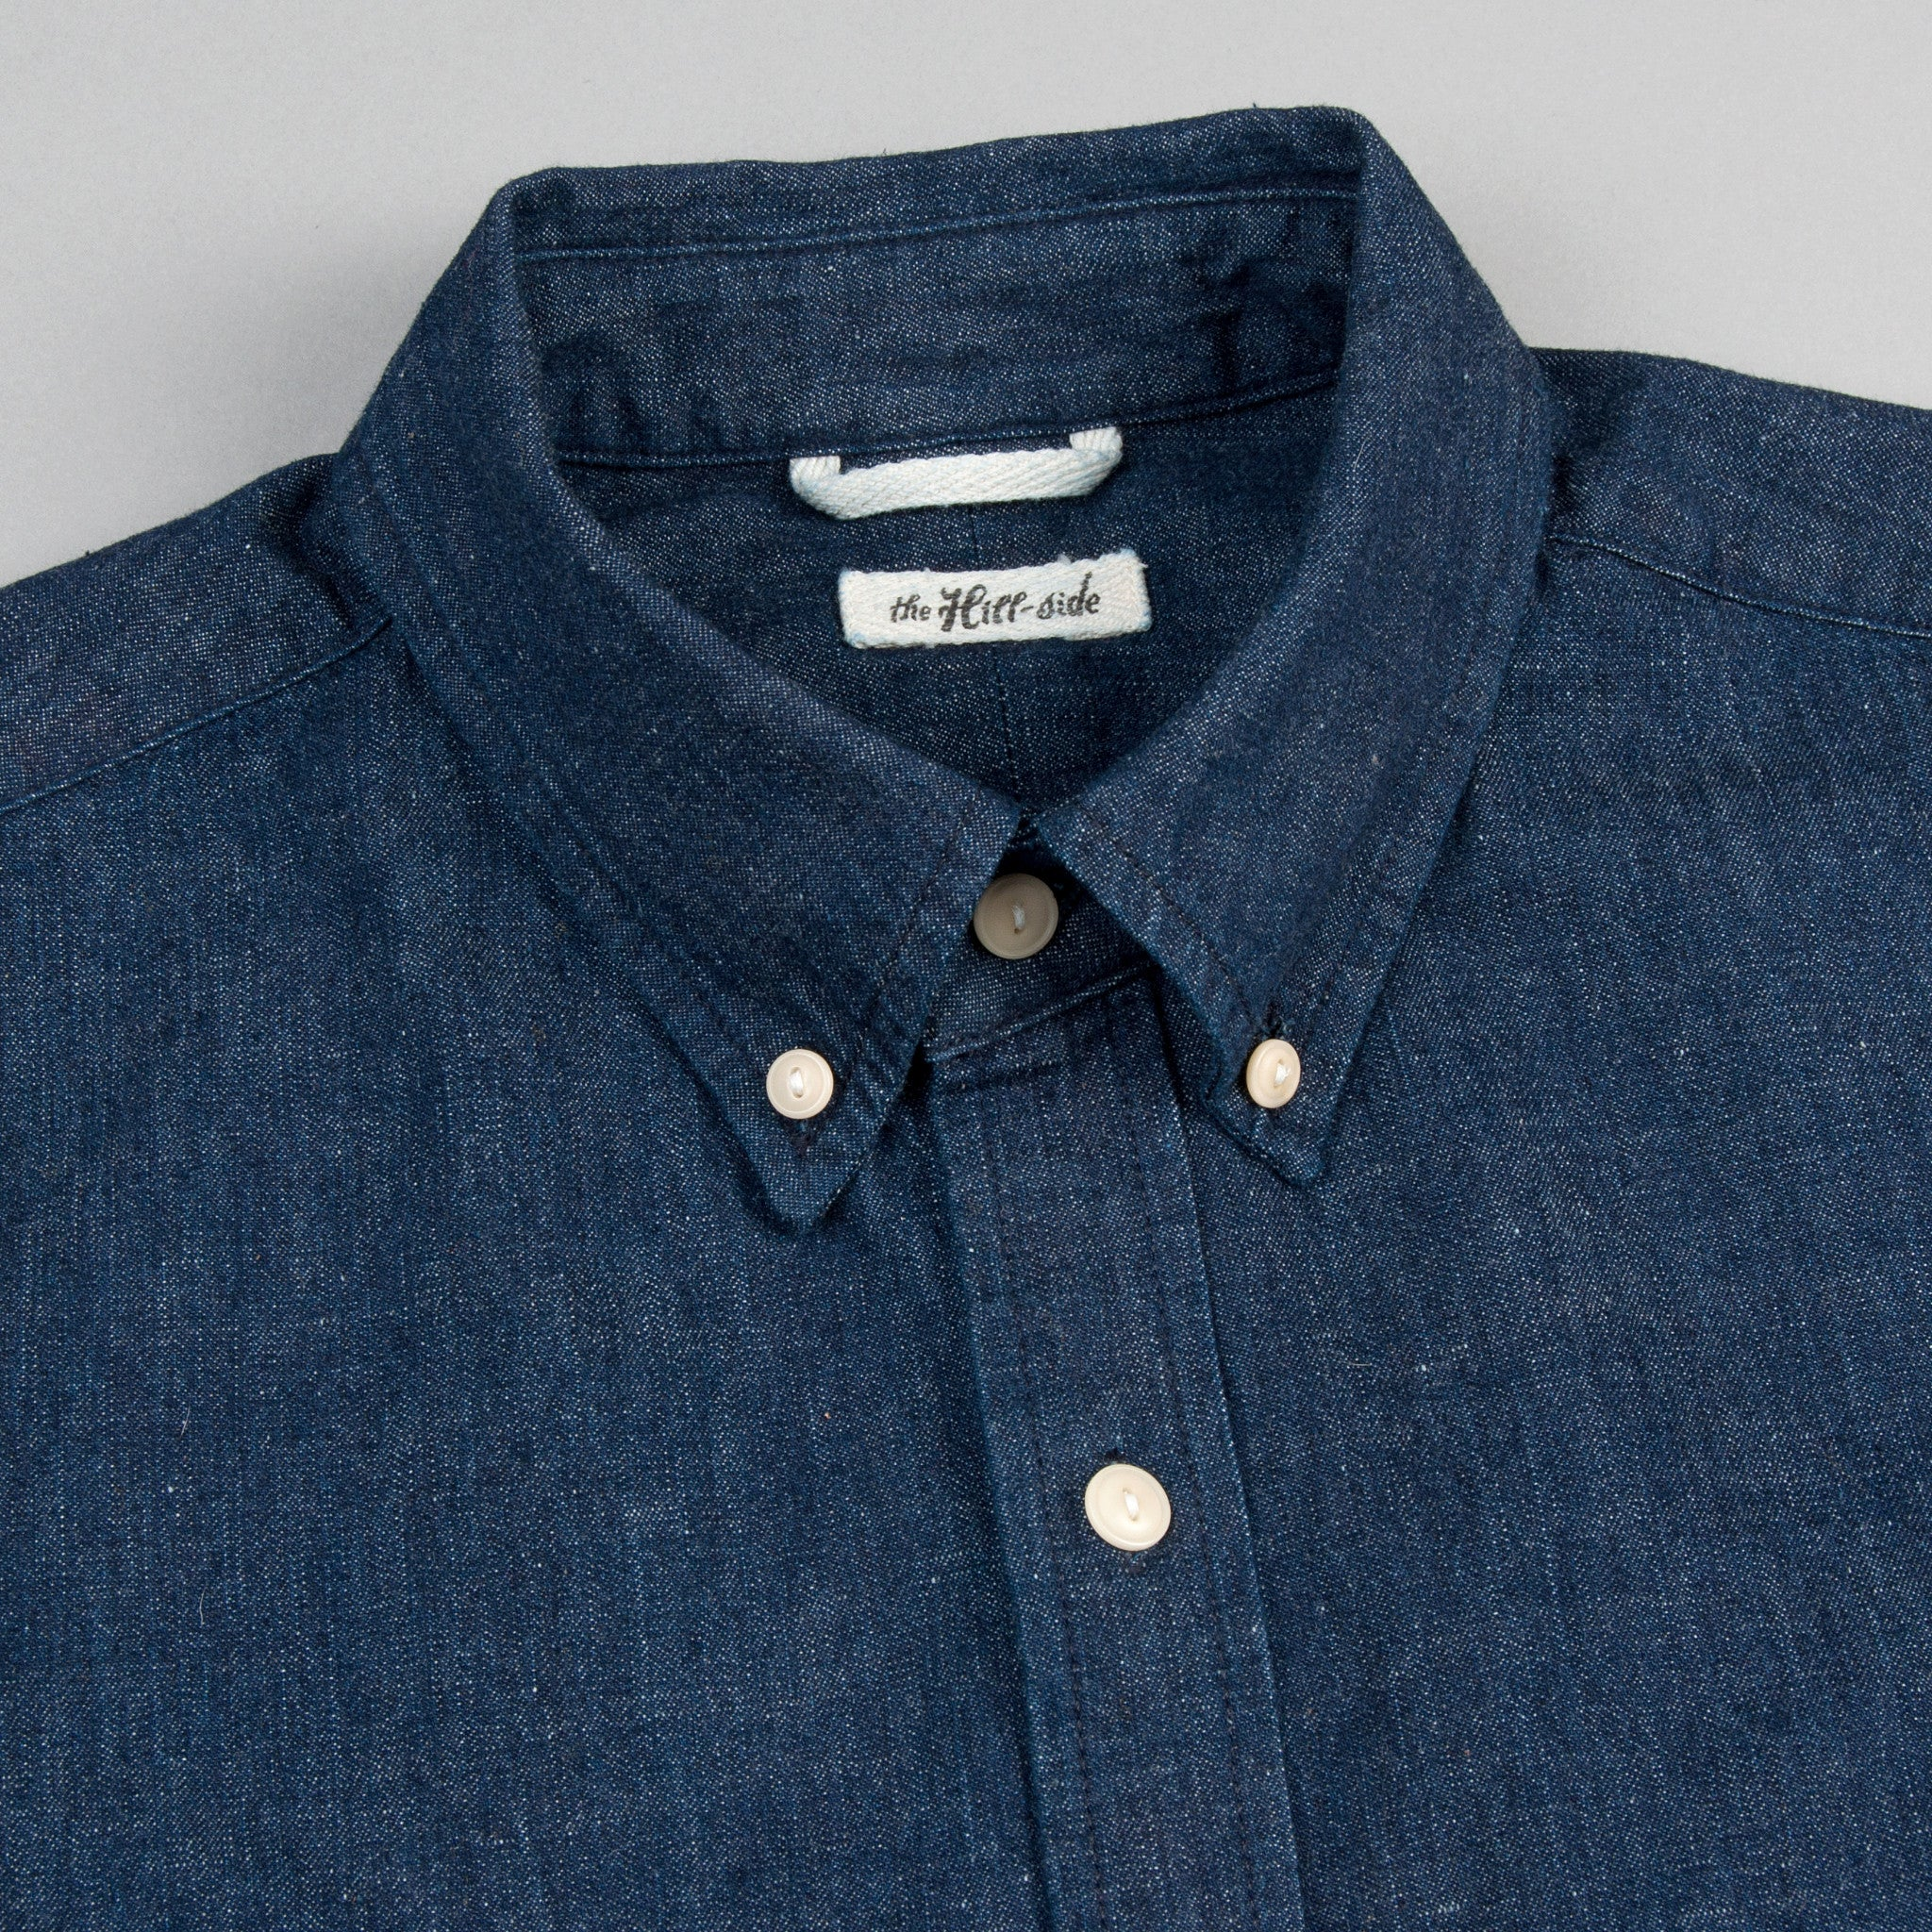 The Hill-Side - Long Sleeve Standard Shirt, Lightweight Weft-Slub Selvedge Denim - SH1-310